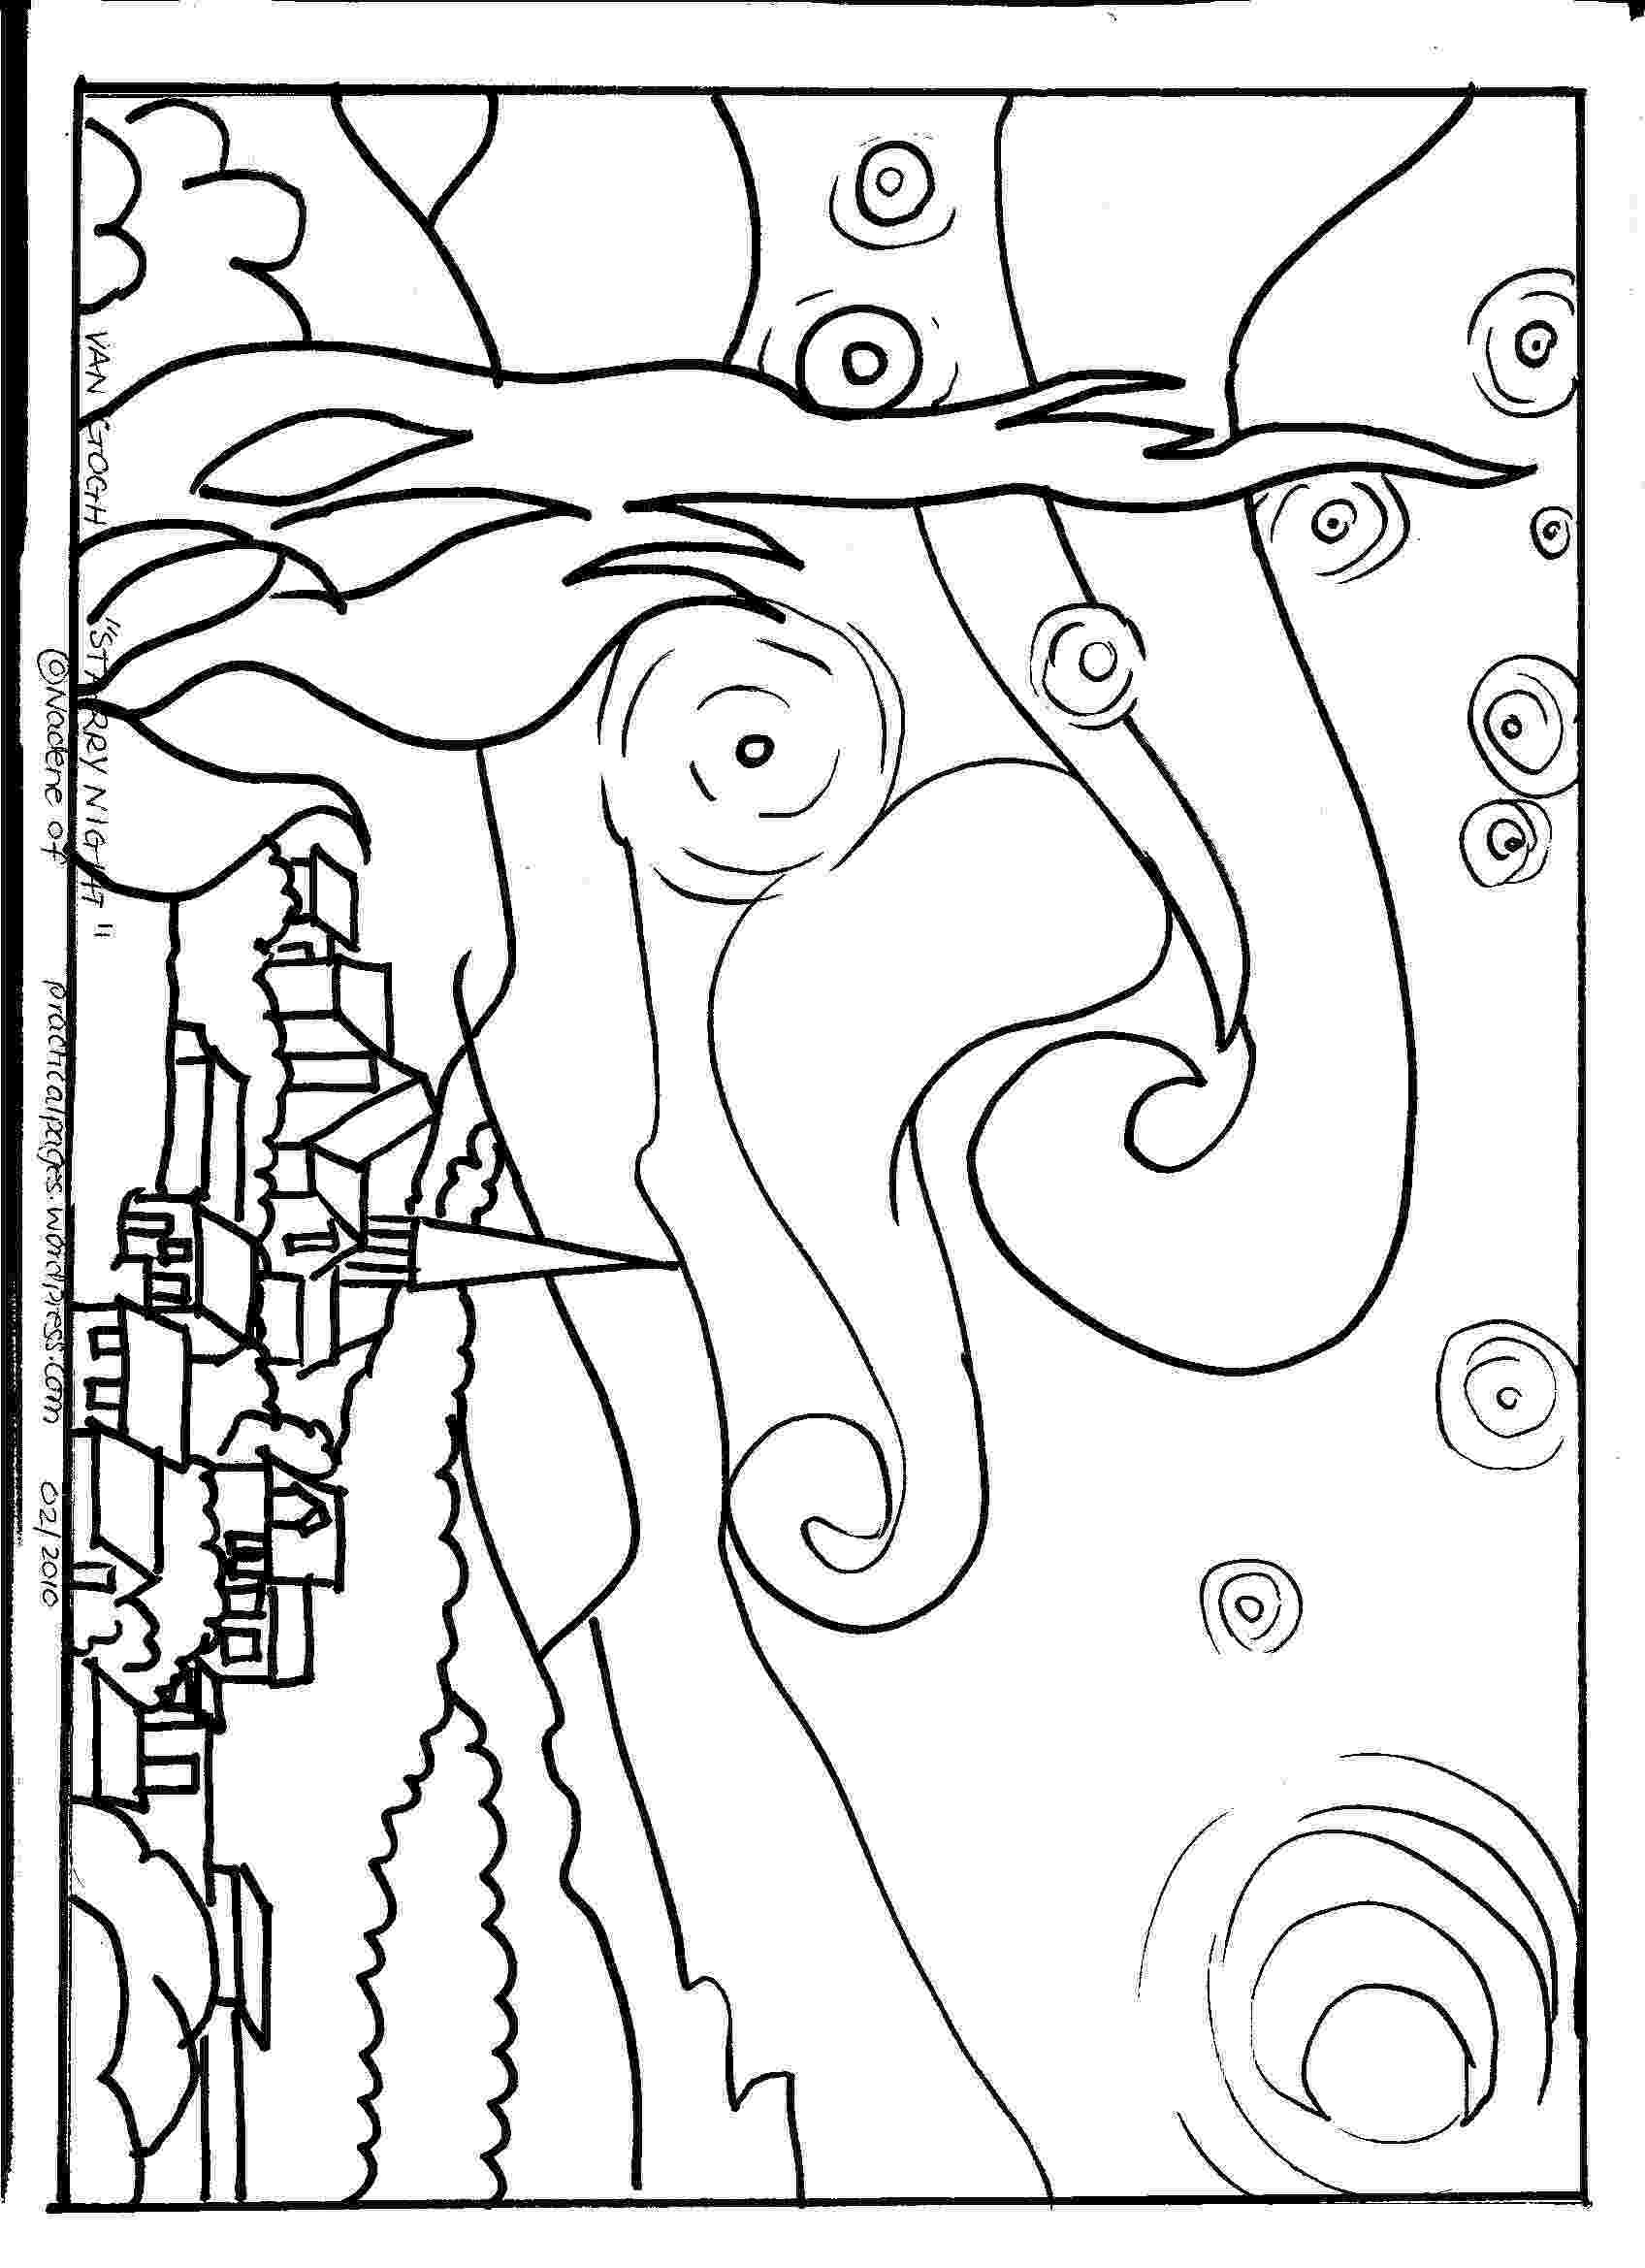 famous artists for kids coloring pages famous painters and paintings coloring pages artists pages coloring famous for kids